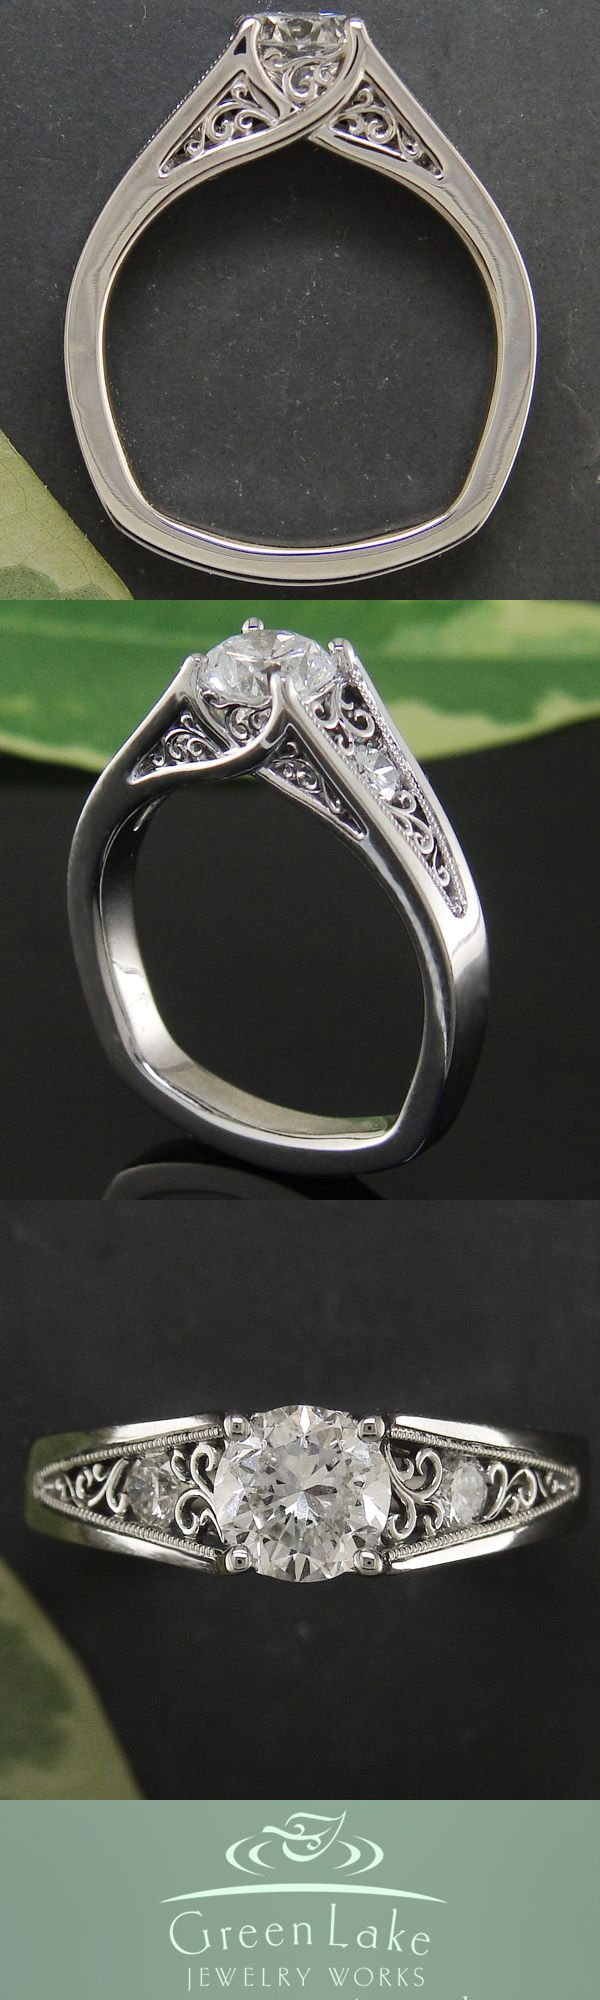 Diamond and palladium ring accented by ornately crafted filigree